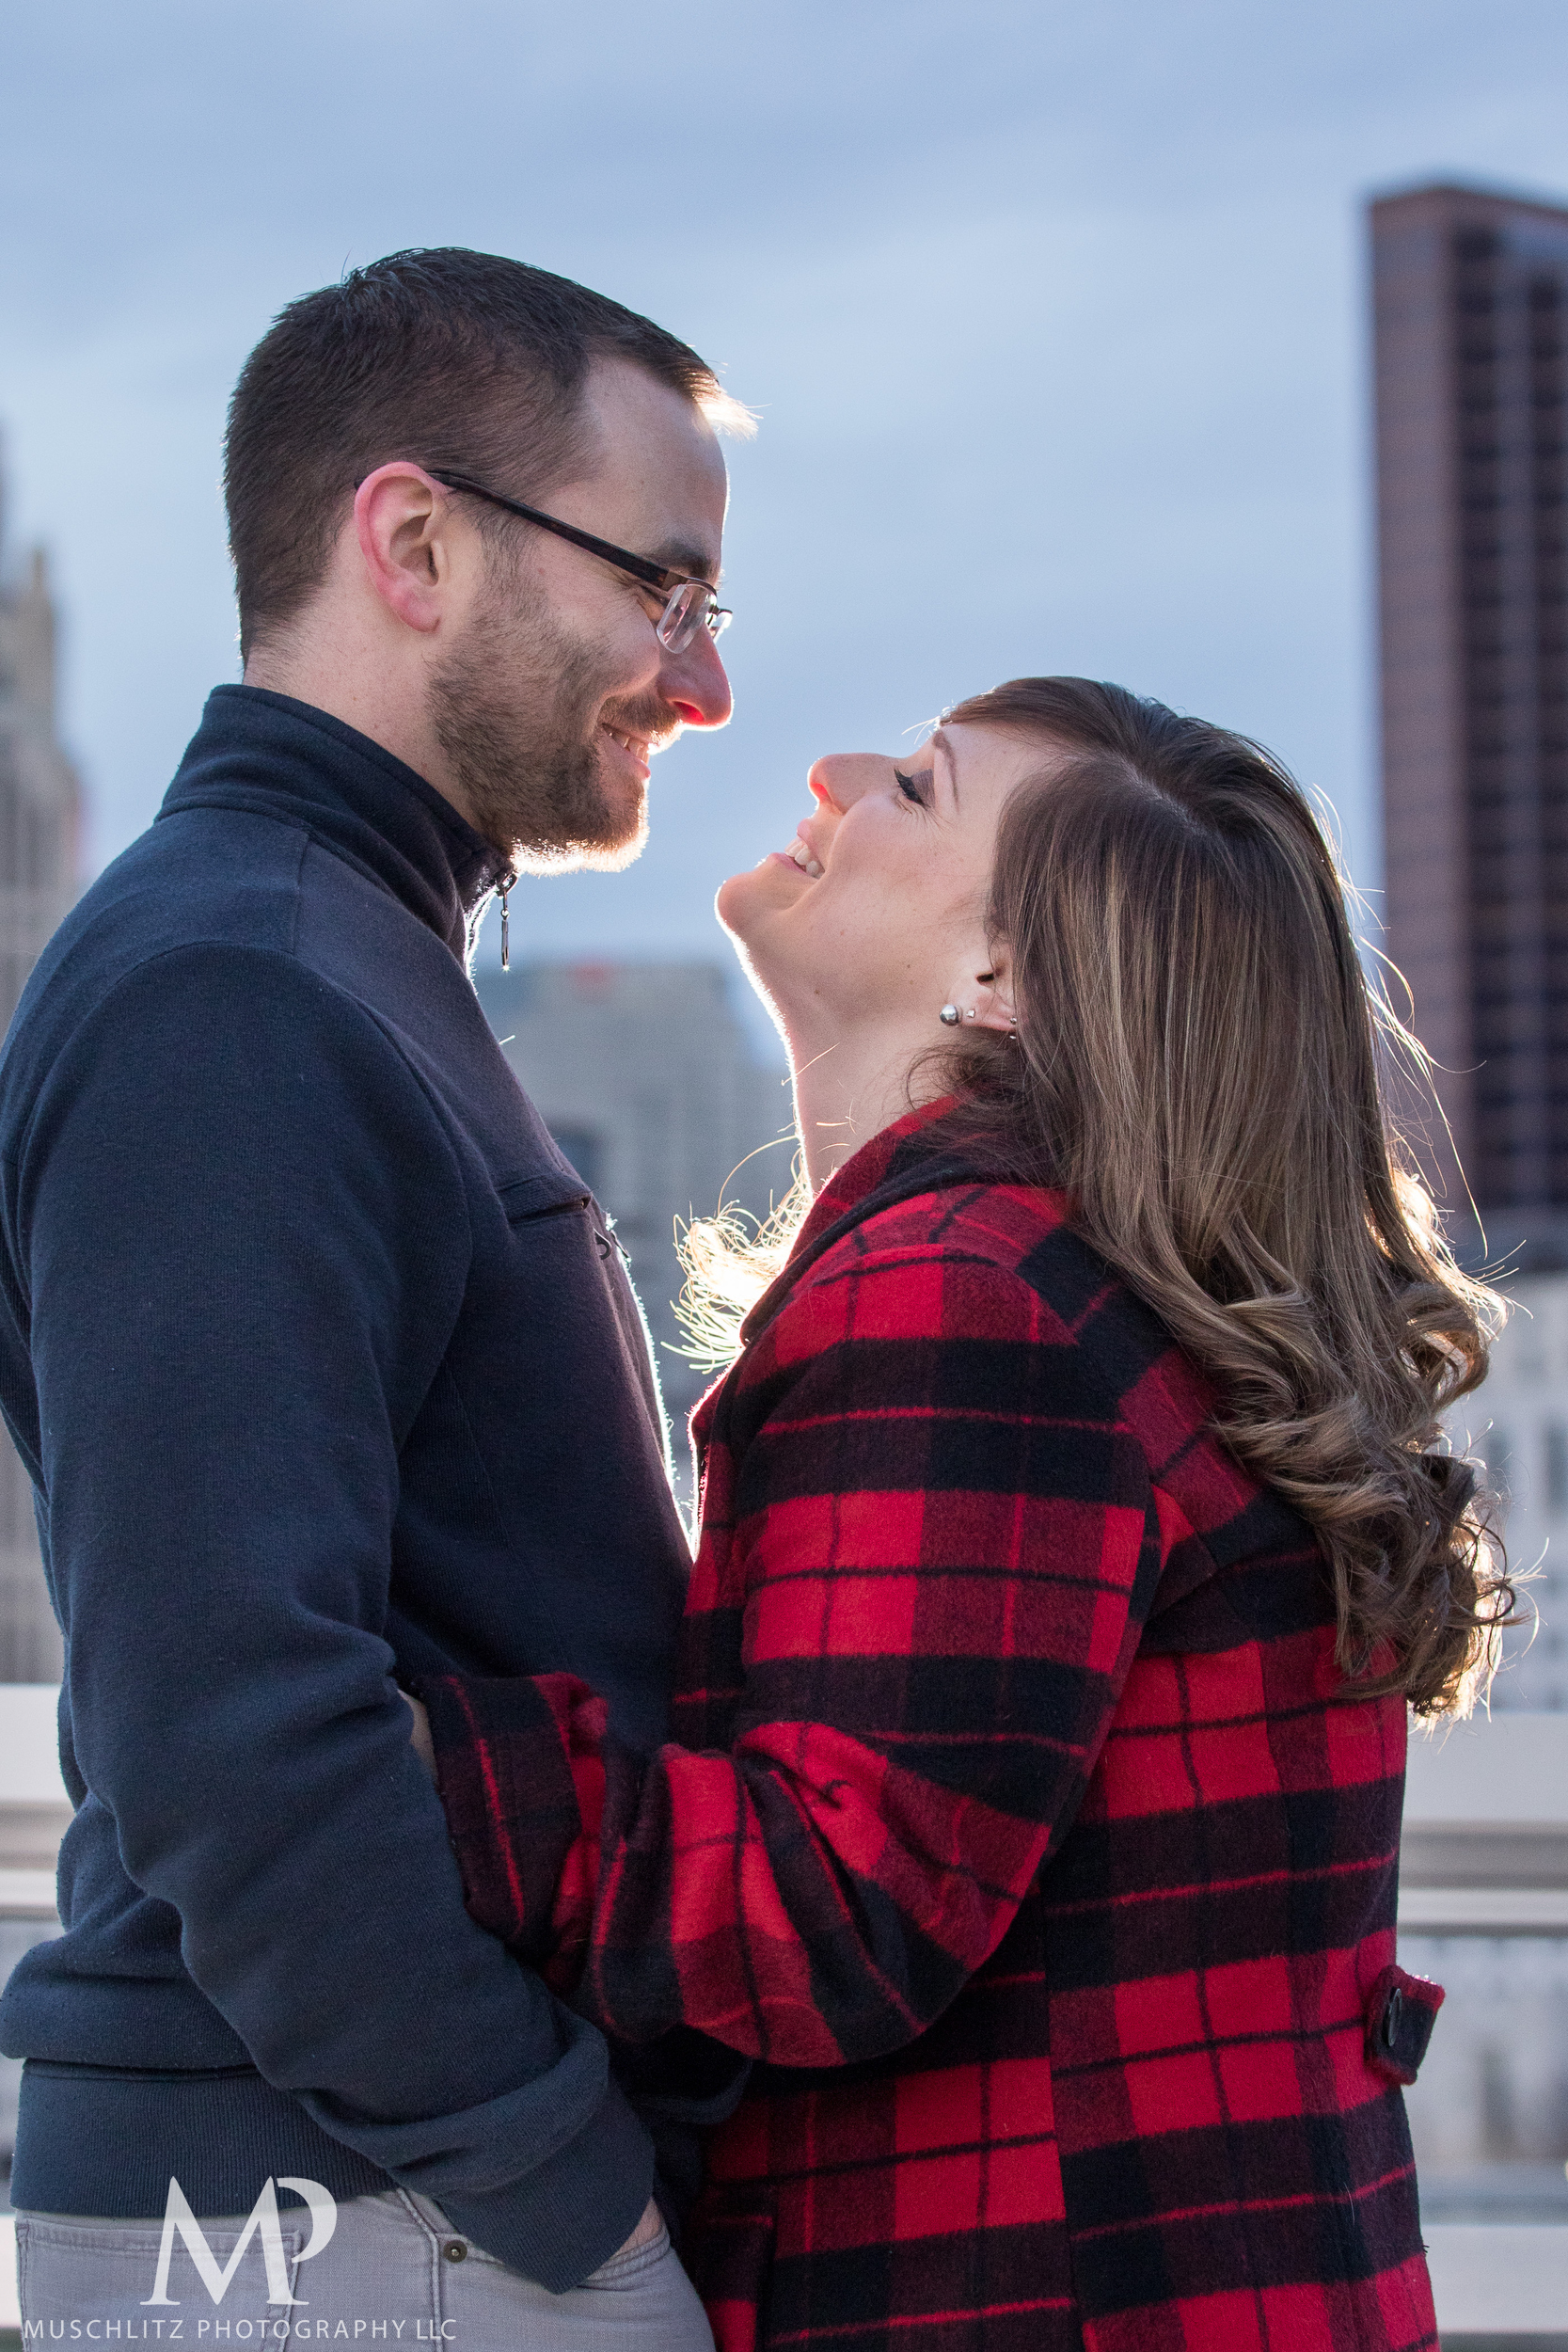 bicentennial-park-engagement-session-holiday-portraits-columbus-ohio-035.JPG